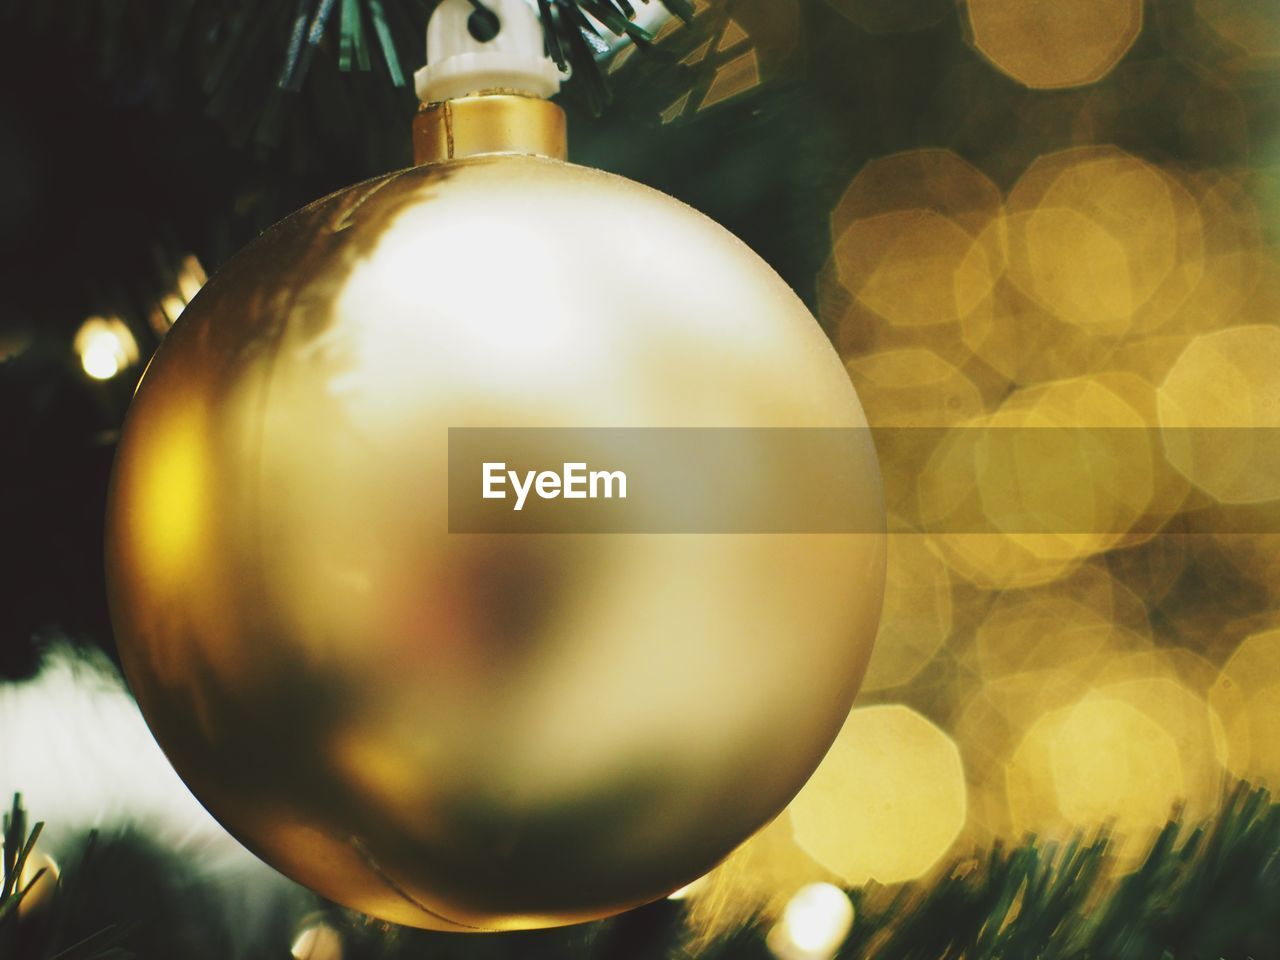 christmas decoration, christmas, close-up, decoration, christmas ornament, celebration, holiday, shiny, sphere, no people, gold colored, selective focus, hanging, shape, holiday - event, focus on foreground, indoors, defocused, event